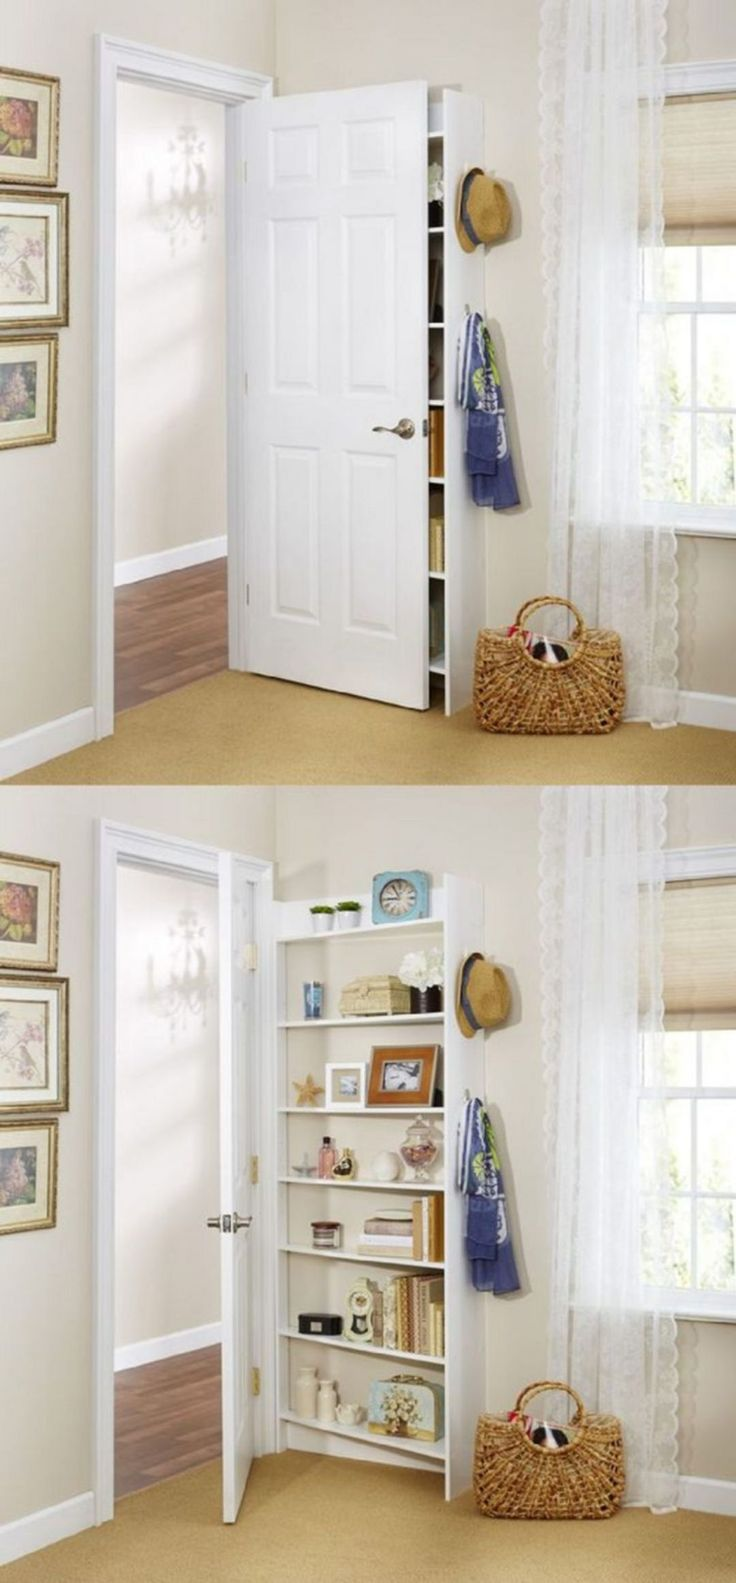 10 Awesome Storage Design Ideas In Your Bedroom